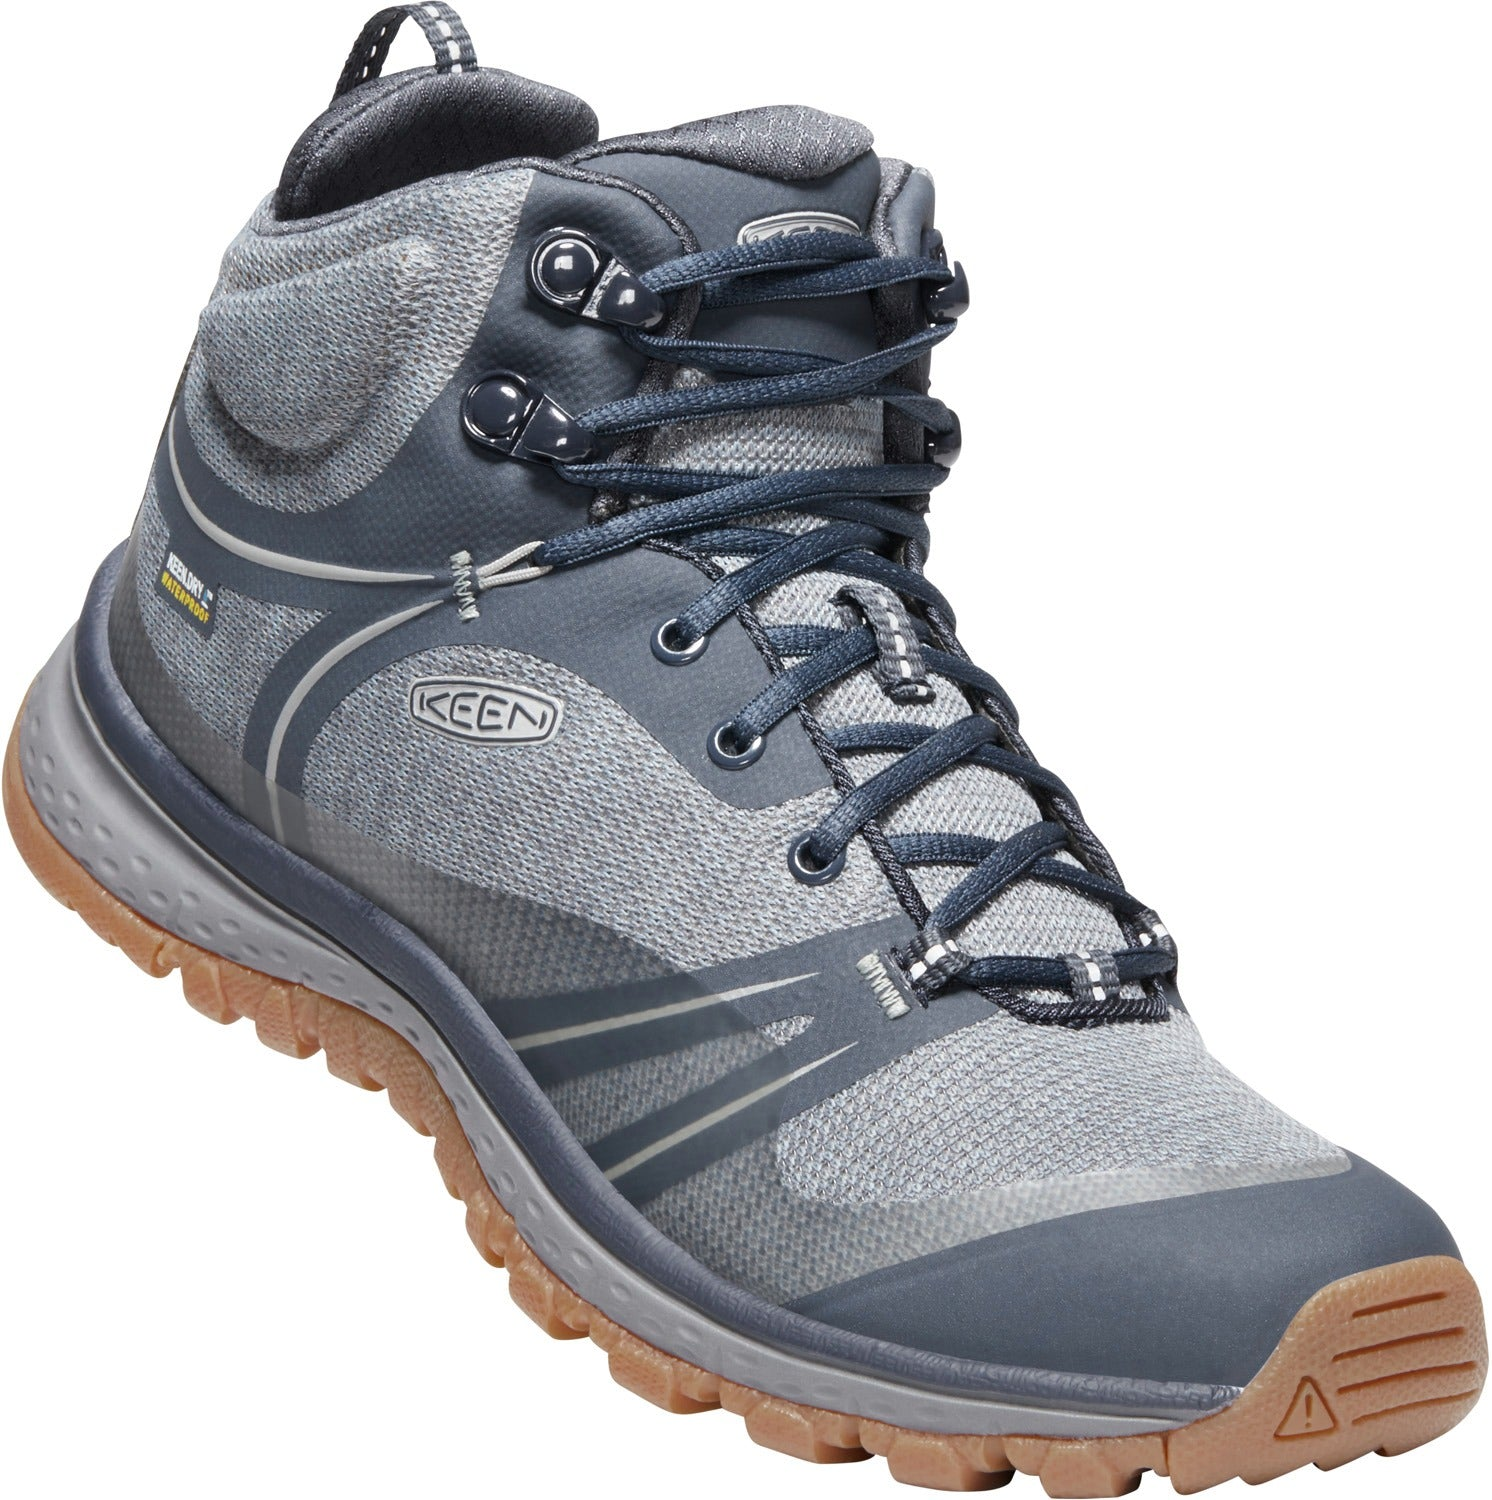 1020716 - Keen Terradora Waterproof Mid - Blue Night / Blue Mirage